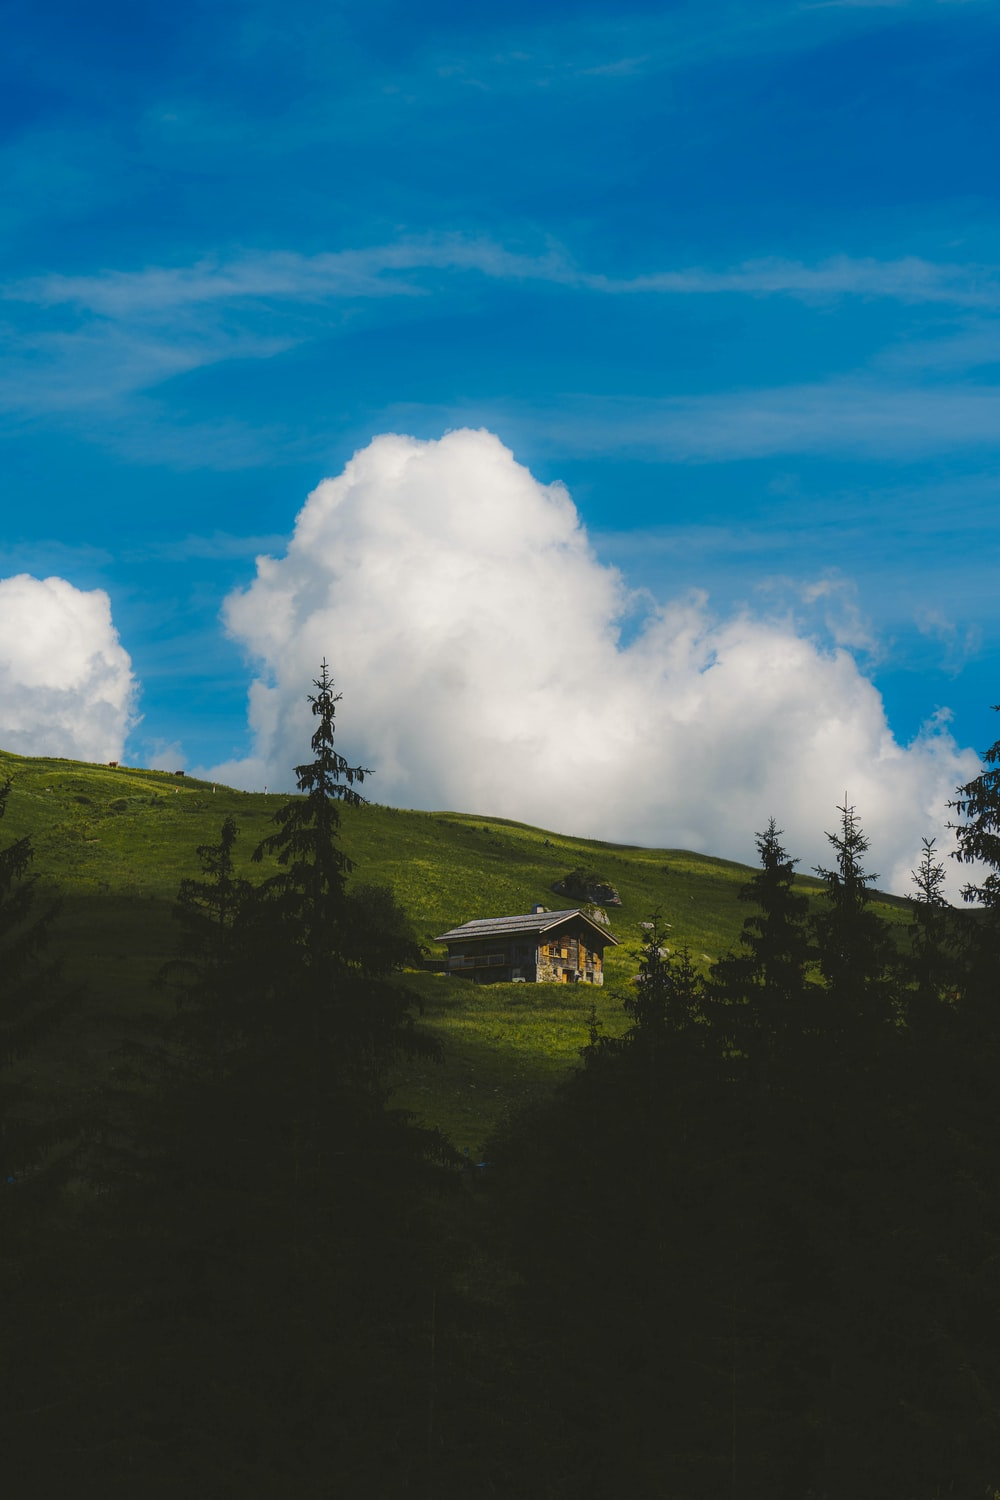 green mountain under blue sky and white clouds during daytime